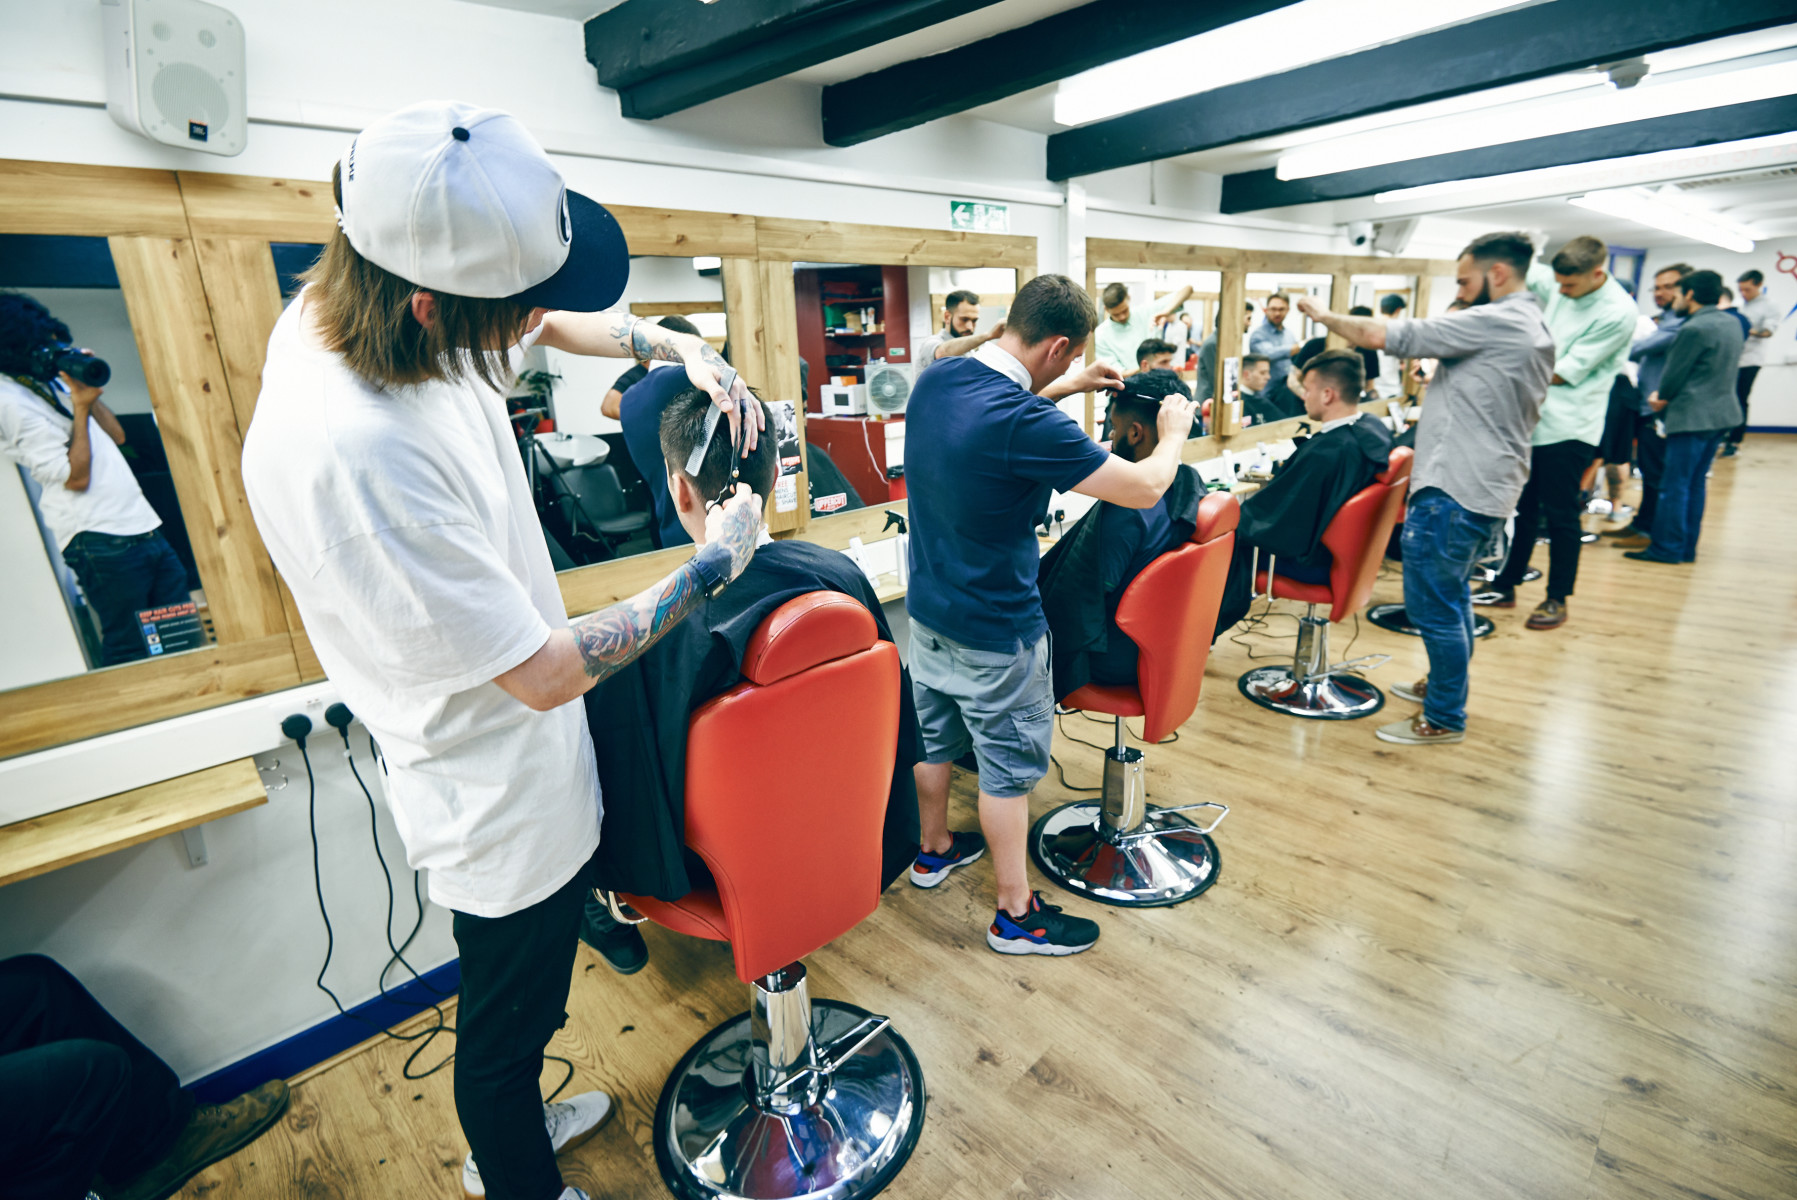 Barber Classes : NVQ barbering coursesBarbering NVQ level 2-London School of Barbering